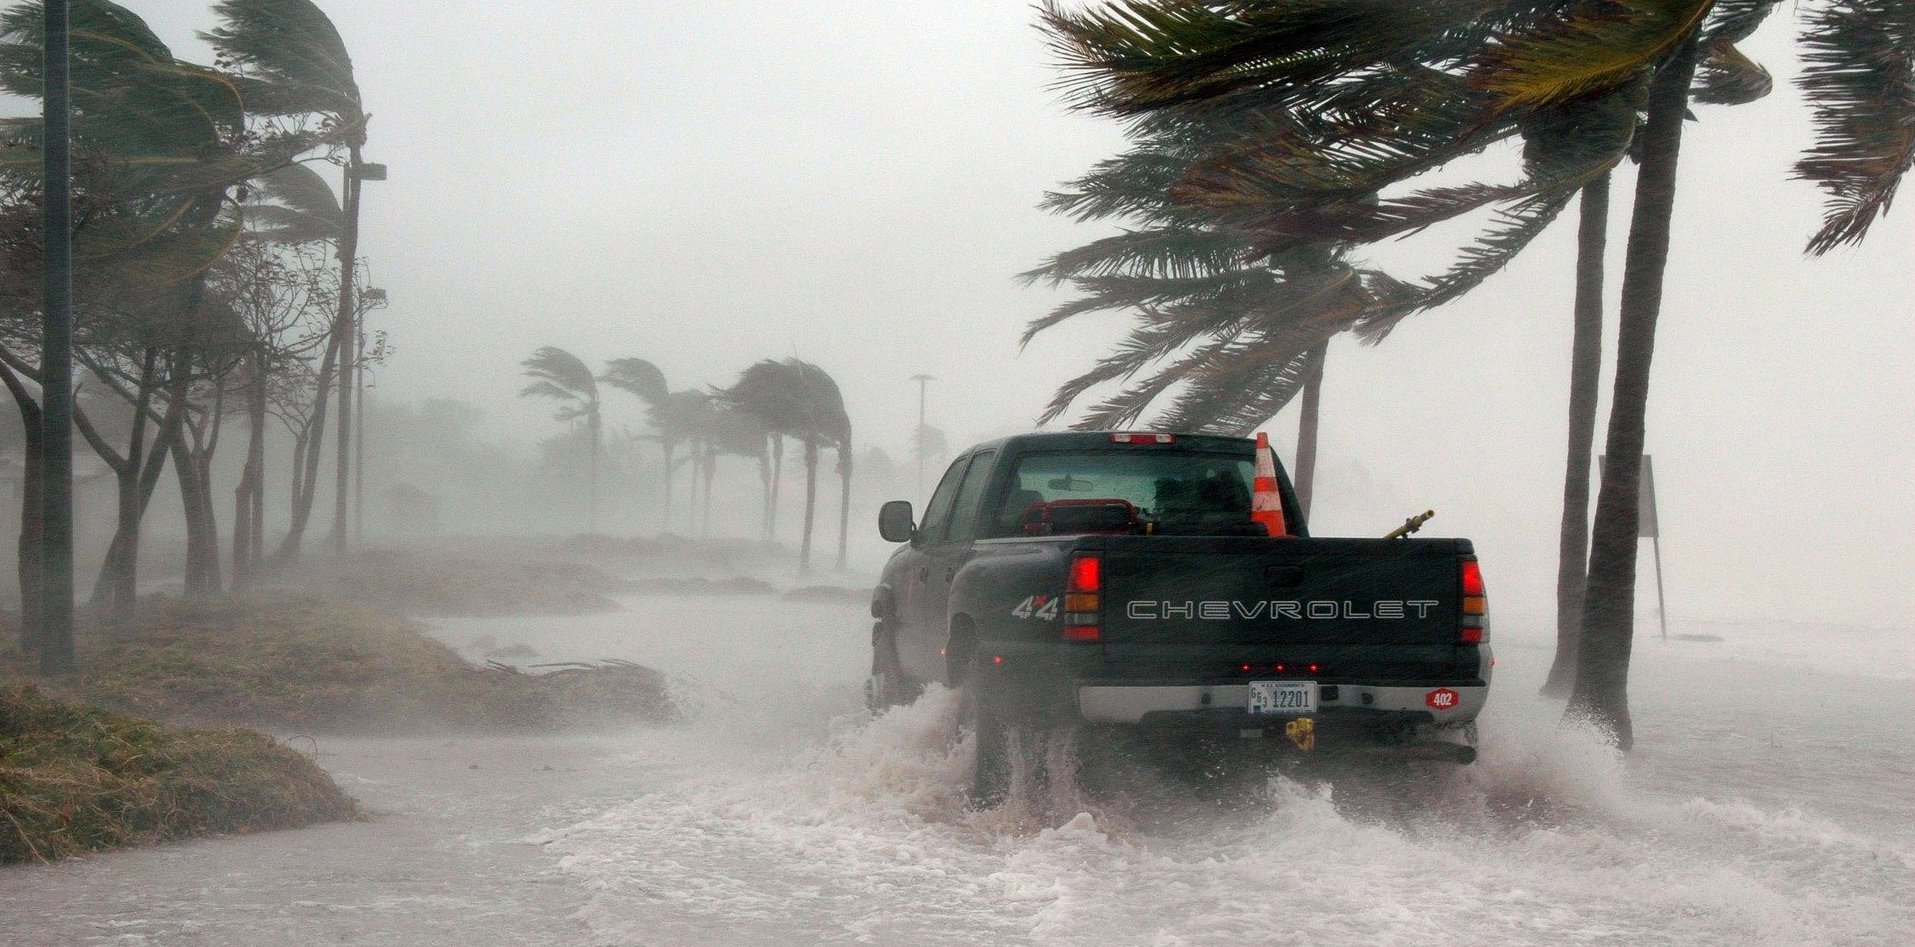 Photo of pickup truck during hurricane for climate crisis post